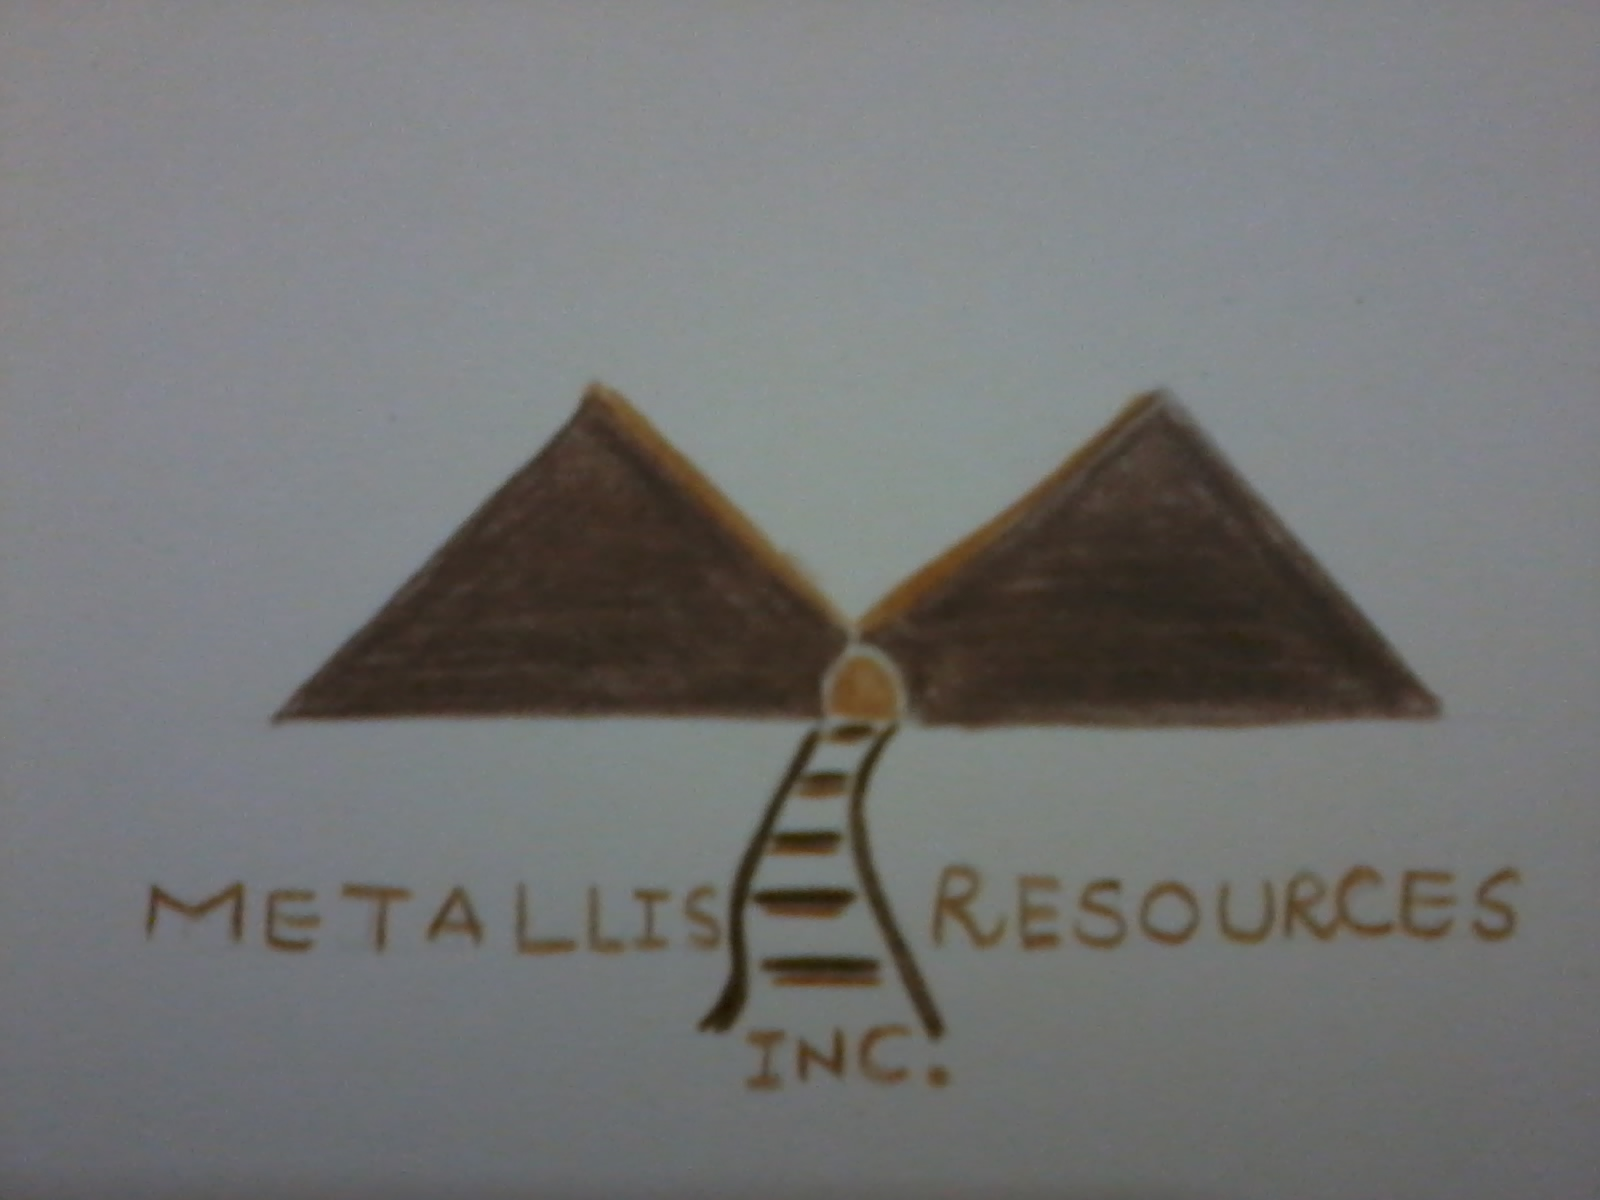 Logo Design by mediaproductionart - Entry No. 33 in the Logo Design Contest Metallis Resources Inc Logo Design.